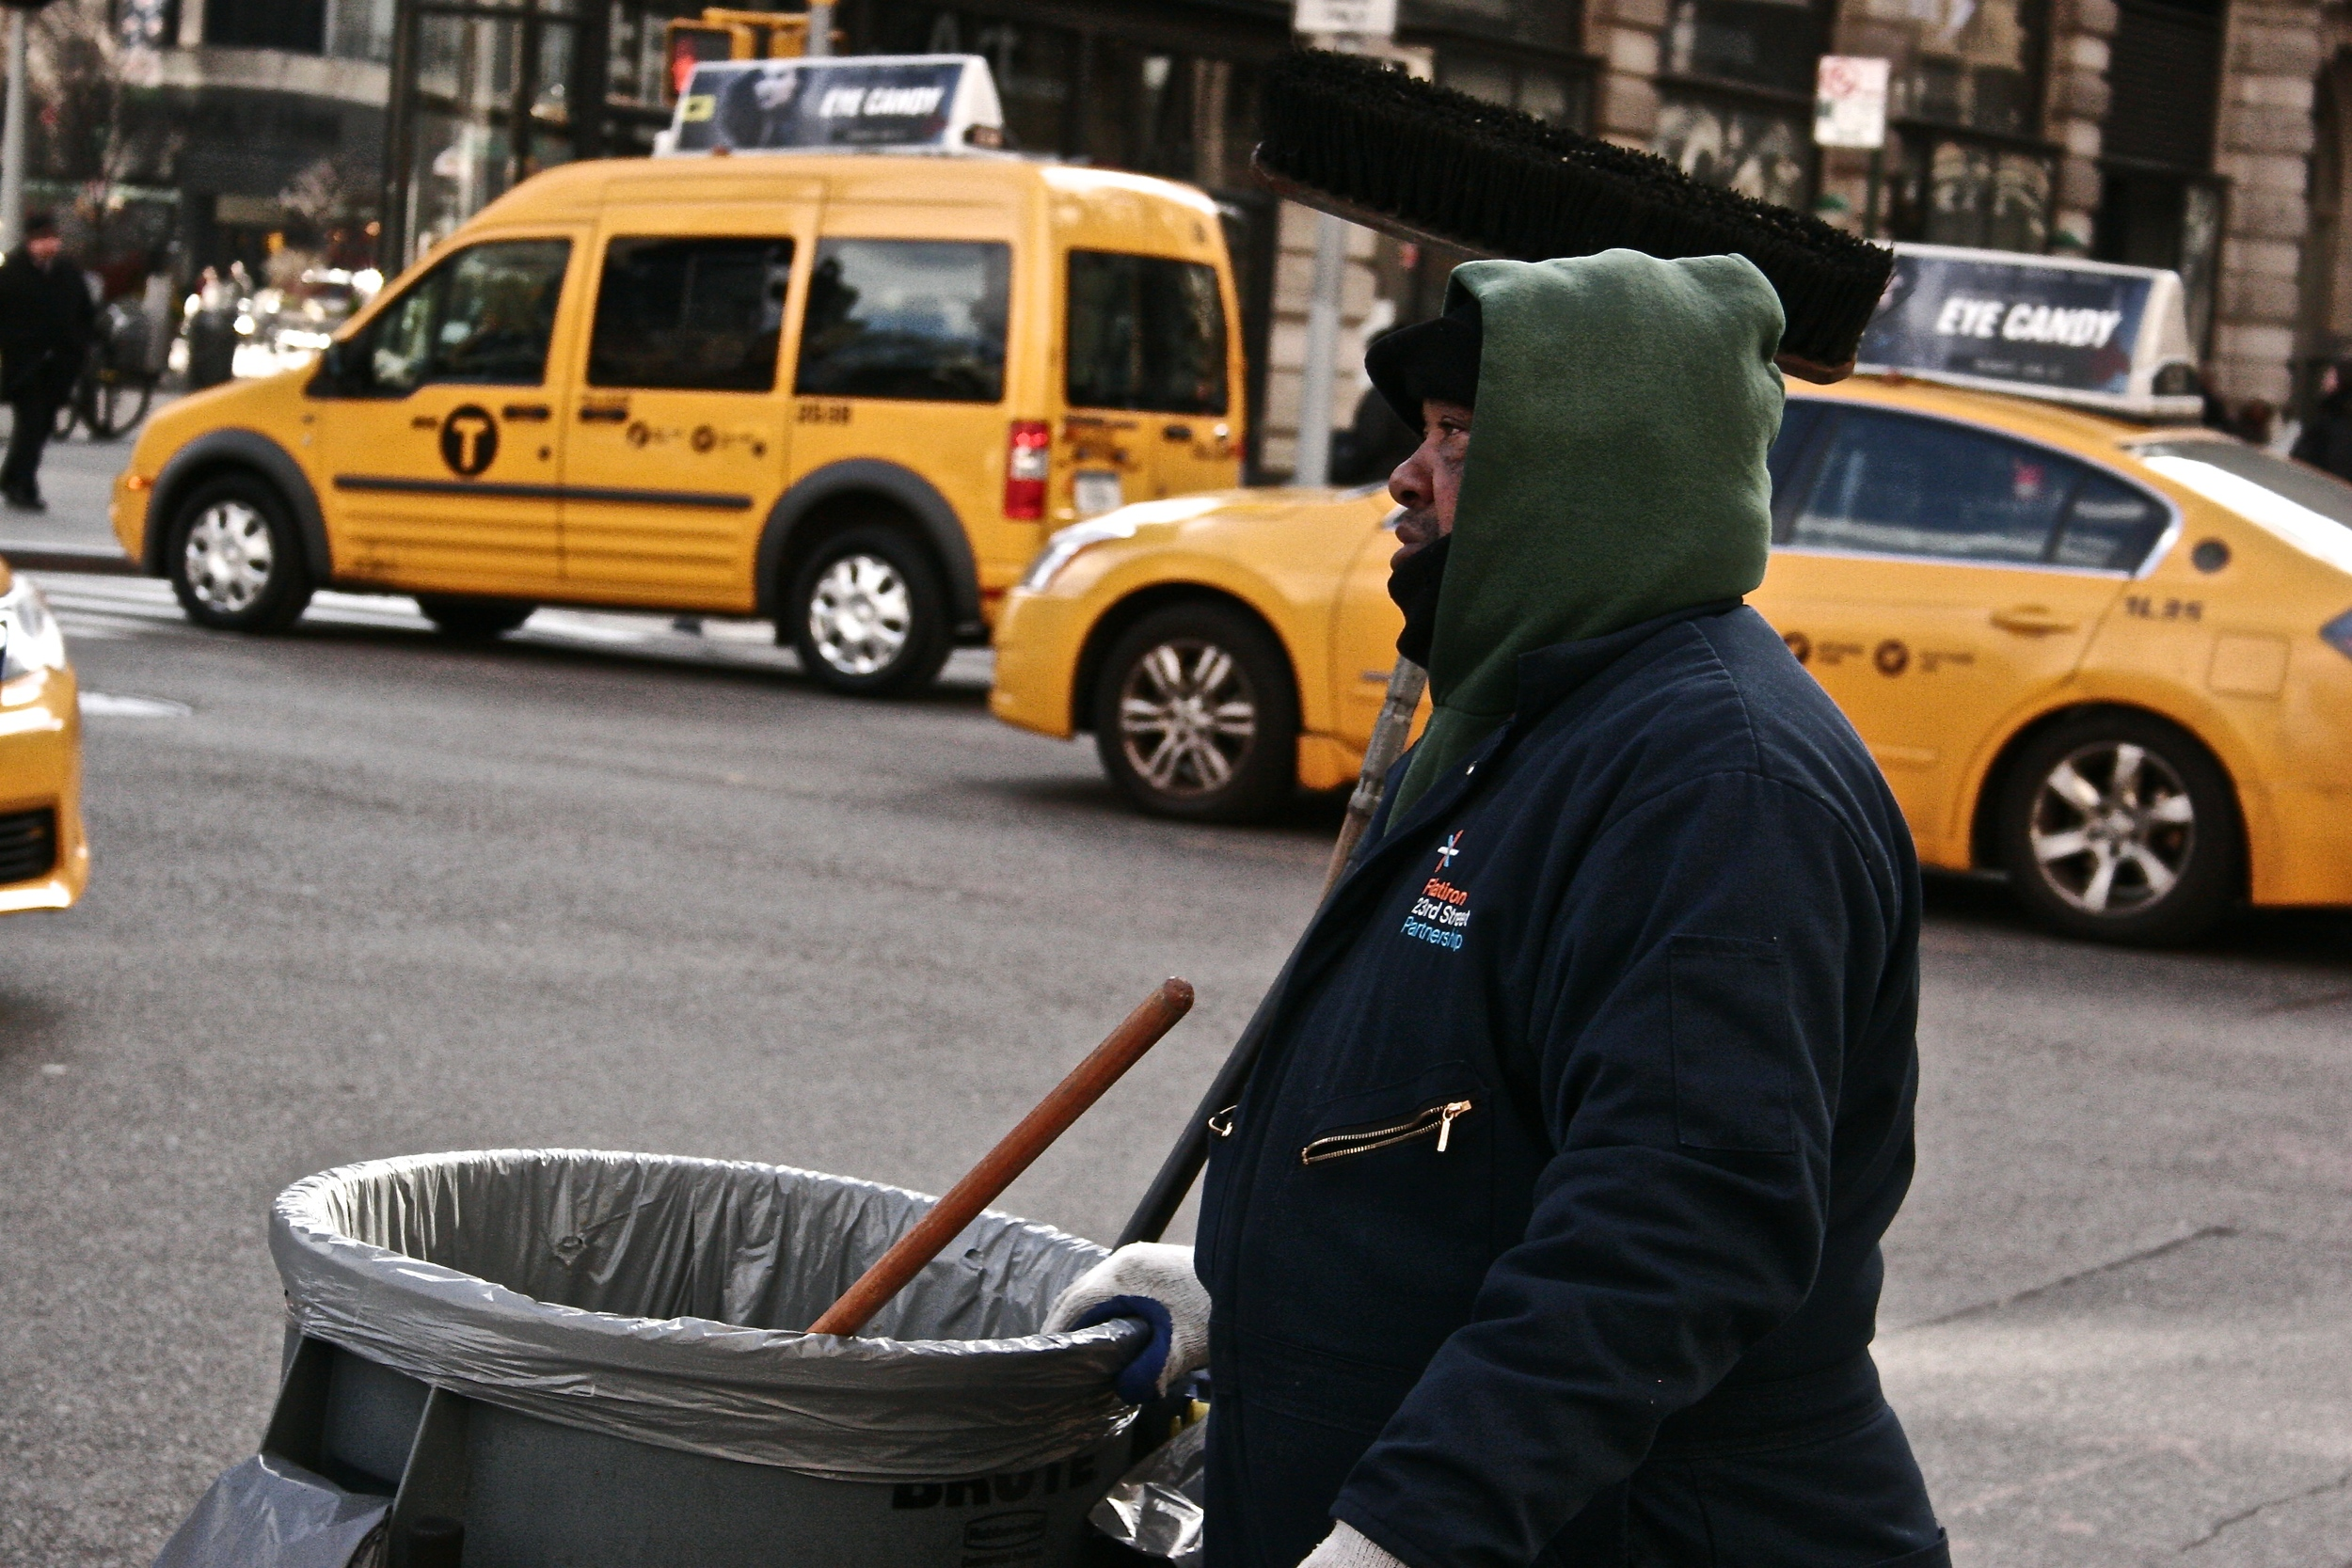 nyc-street-cleaner-crosswalk-webecurry.jpeg